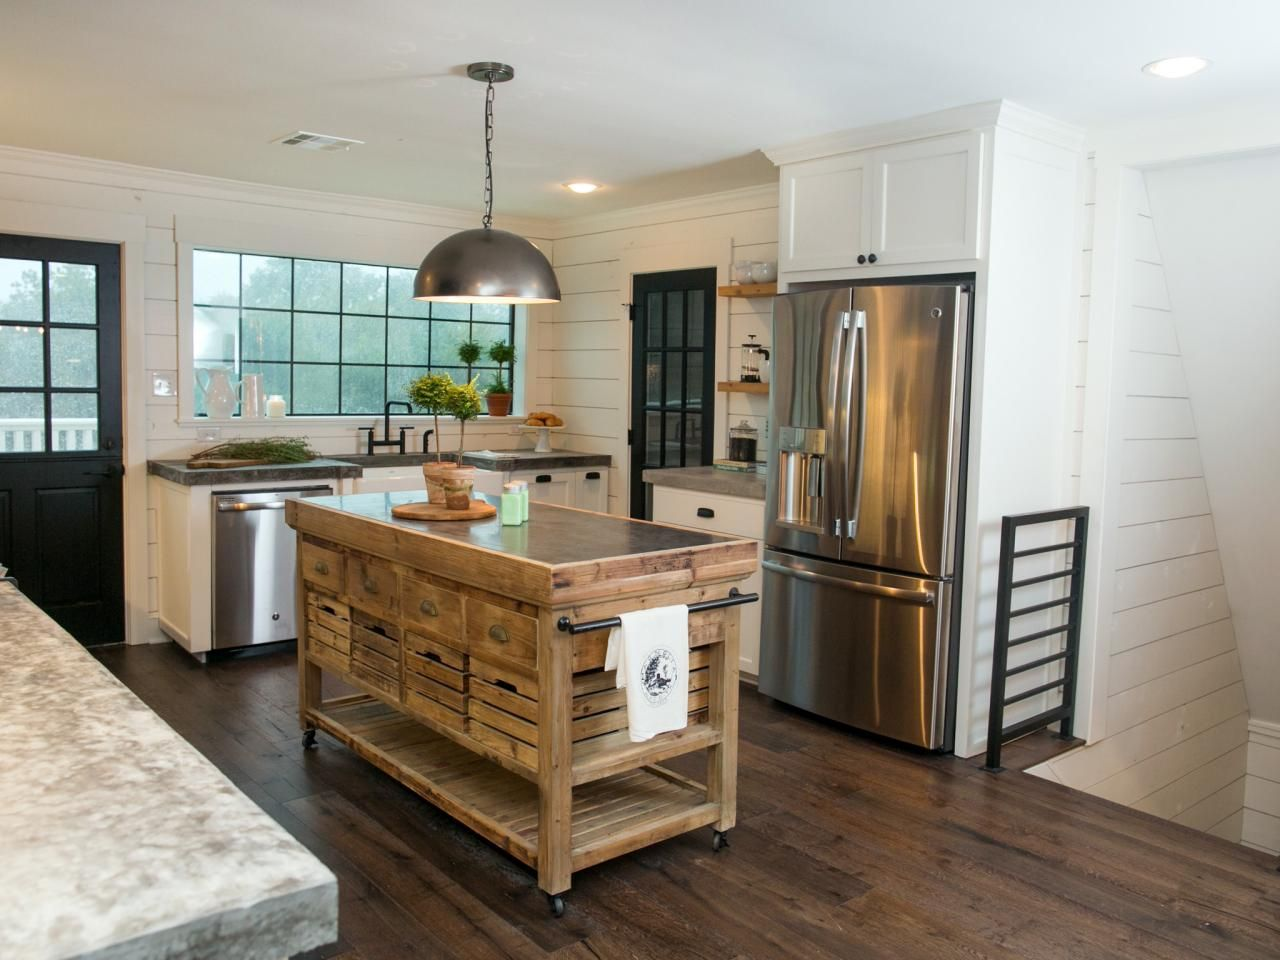 Fixer upper farm kitchens - The Kitchen Located On The Second Floor Effectively Marries Contelmporary Elements Like Stainless Appliances And Black Metal Railing With More Rustic And